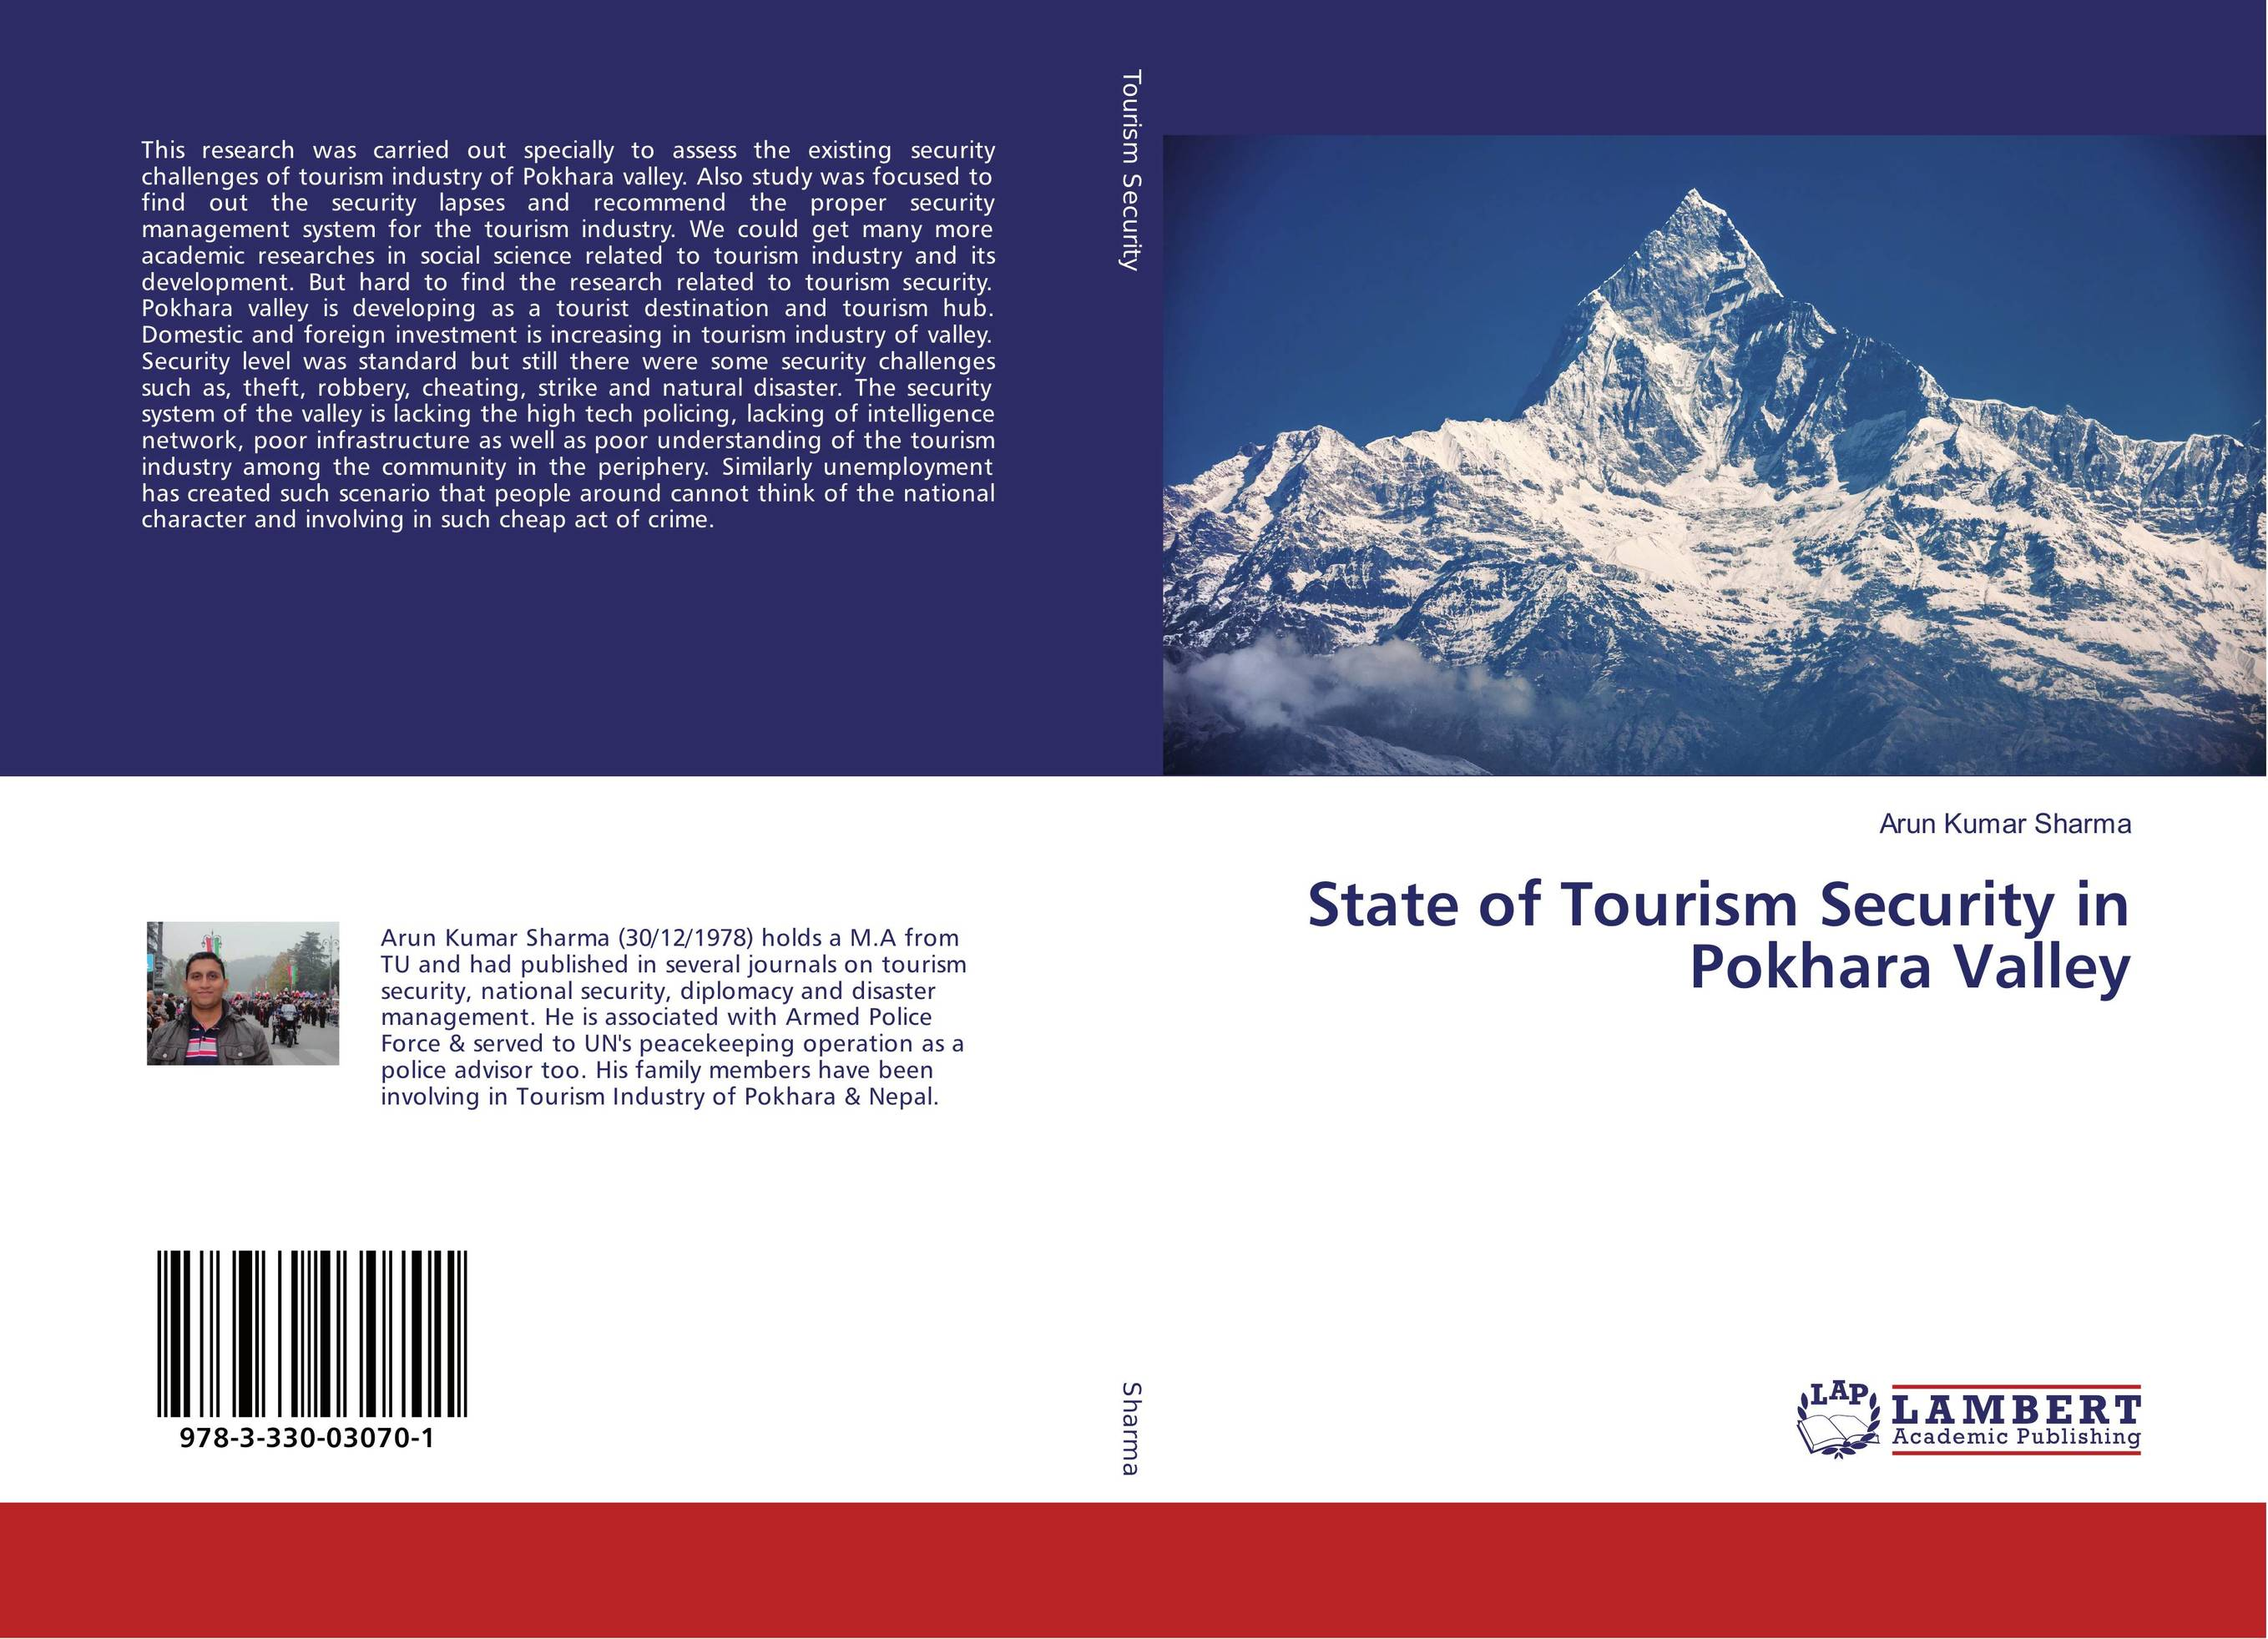 9783330030701 State of Tourism Security in Pokhara Valley Arun Kumar Sharma